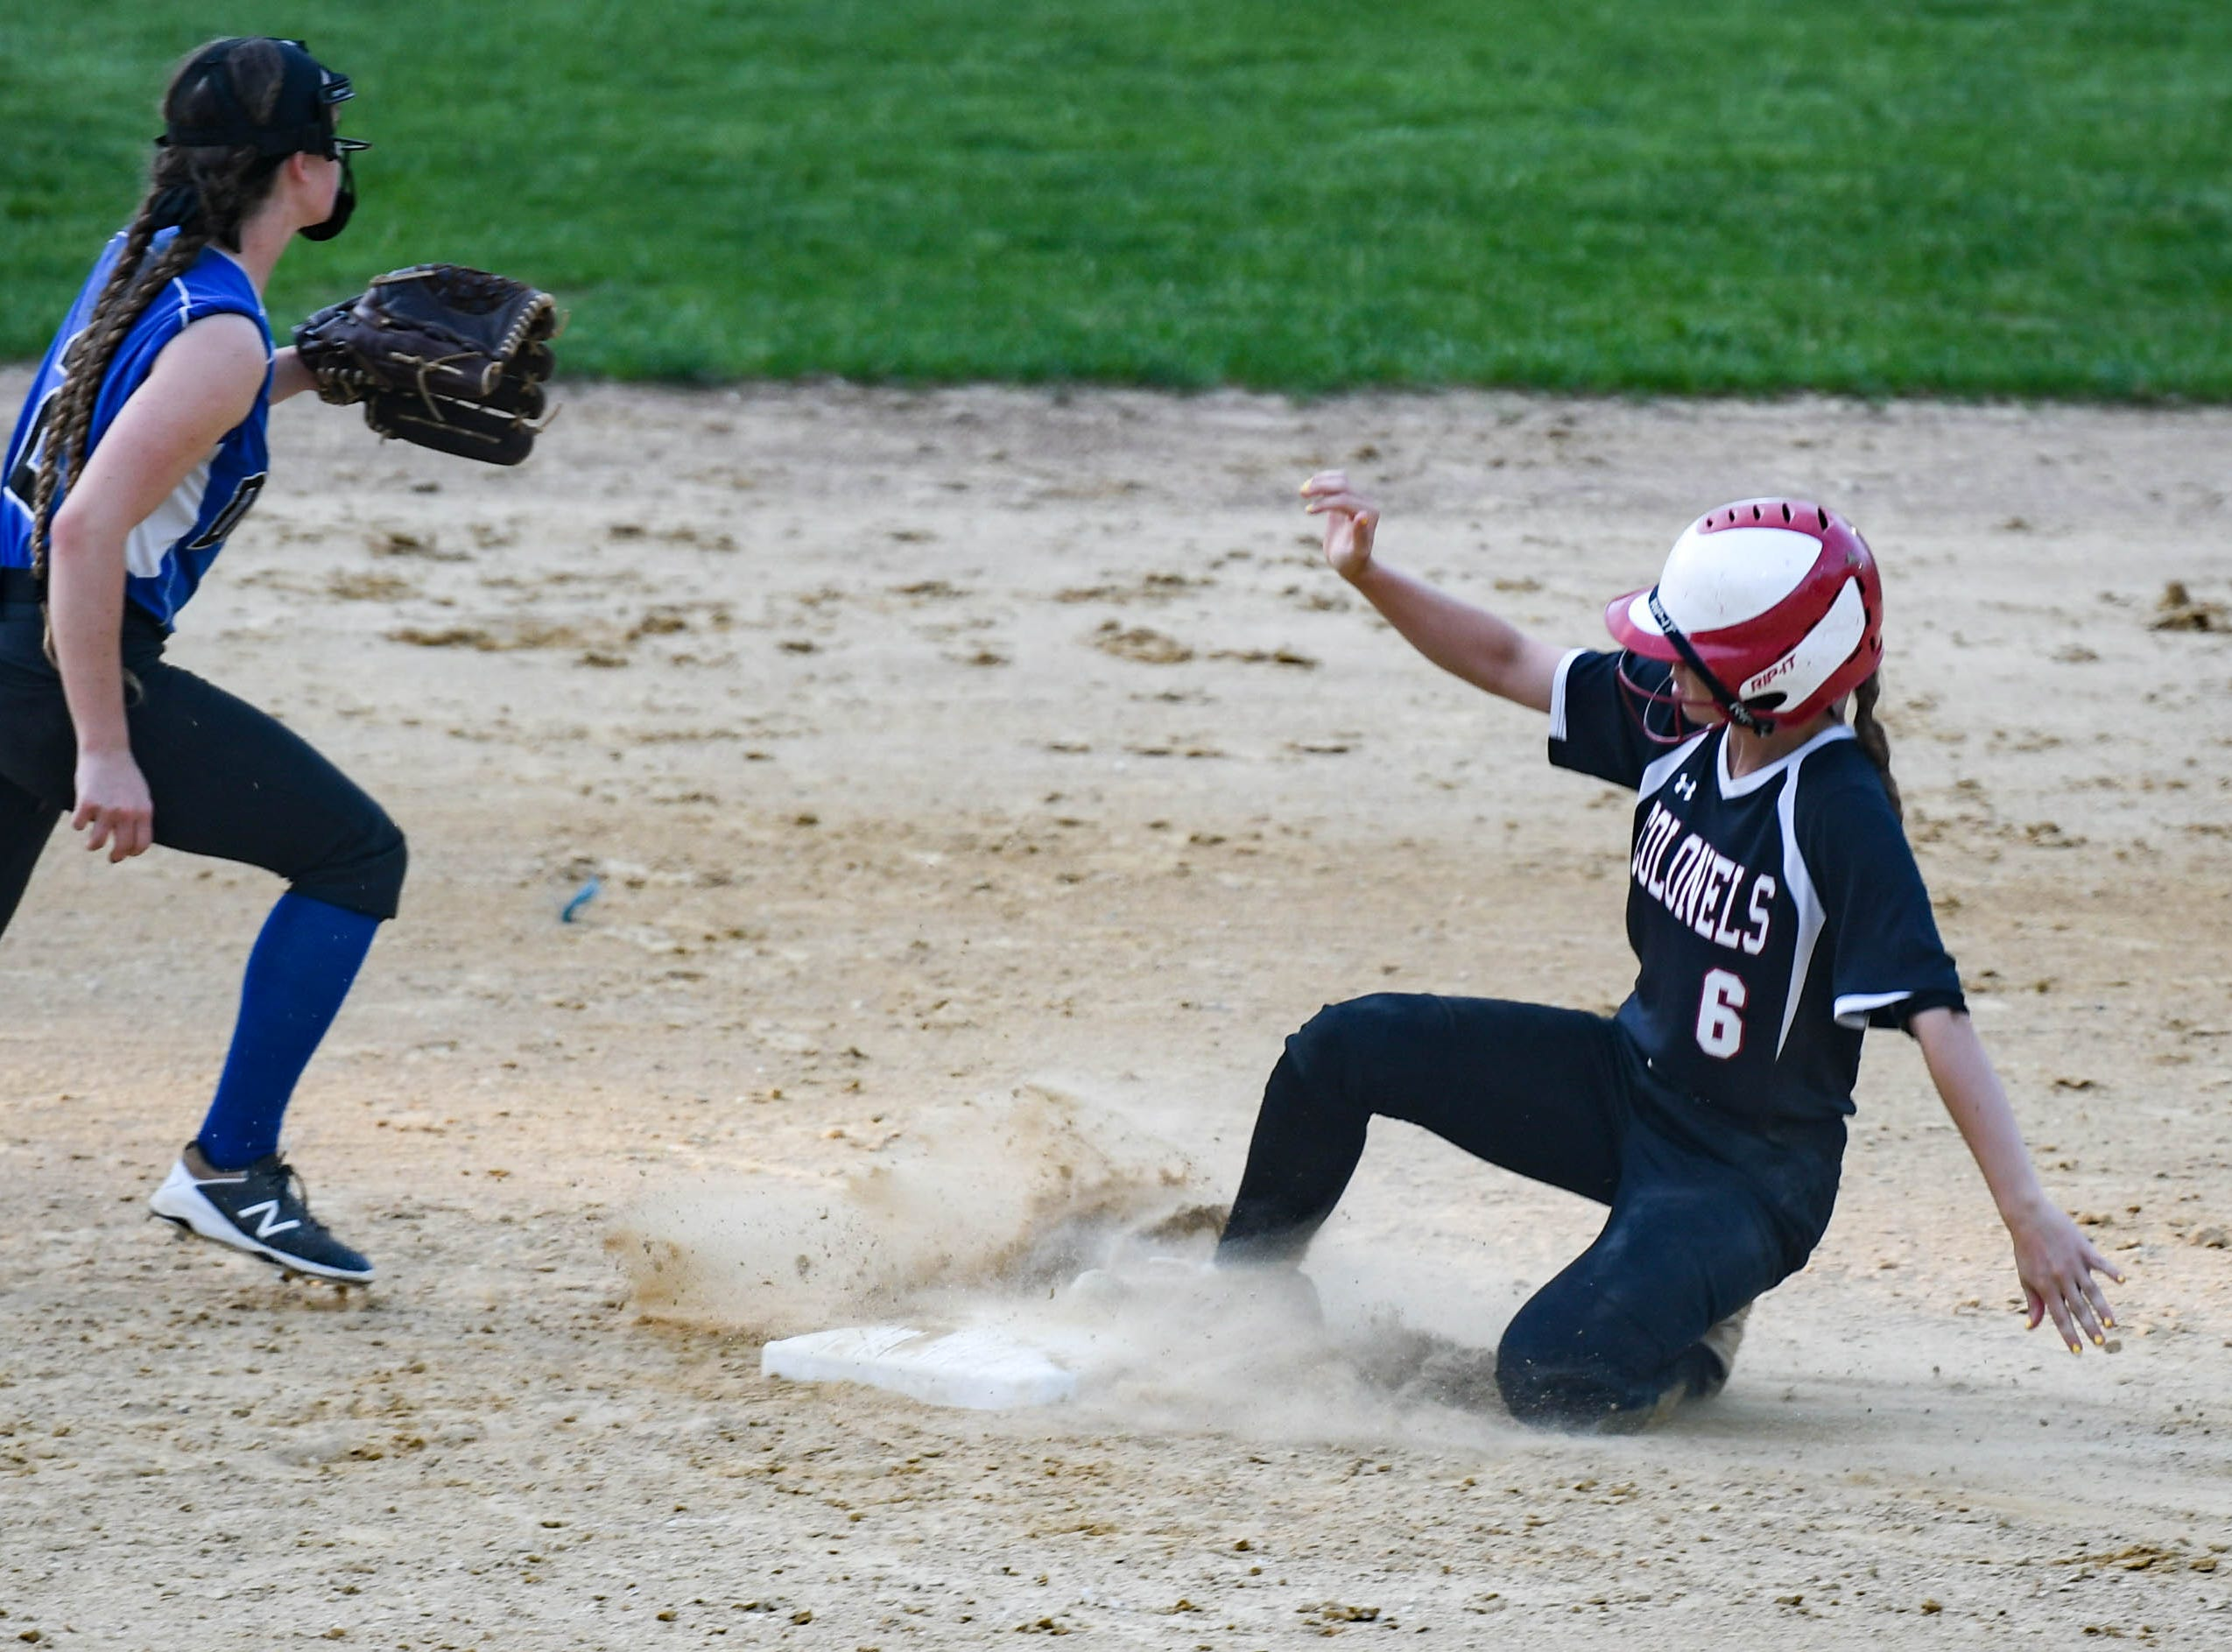 Colonel Richardson's Jen Larrimore (6) slides into second base against Decatur in the Bayside Softball Championship game on Wednesday, May 8, 2019. Decatur prevailed with a score of 4 to 1.